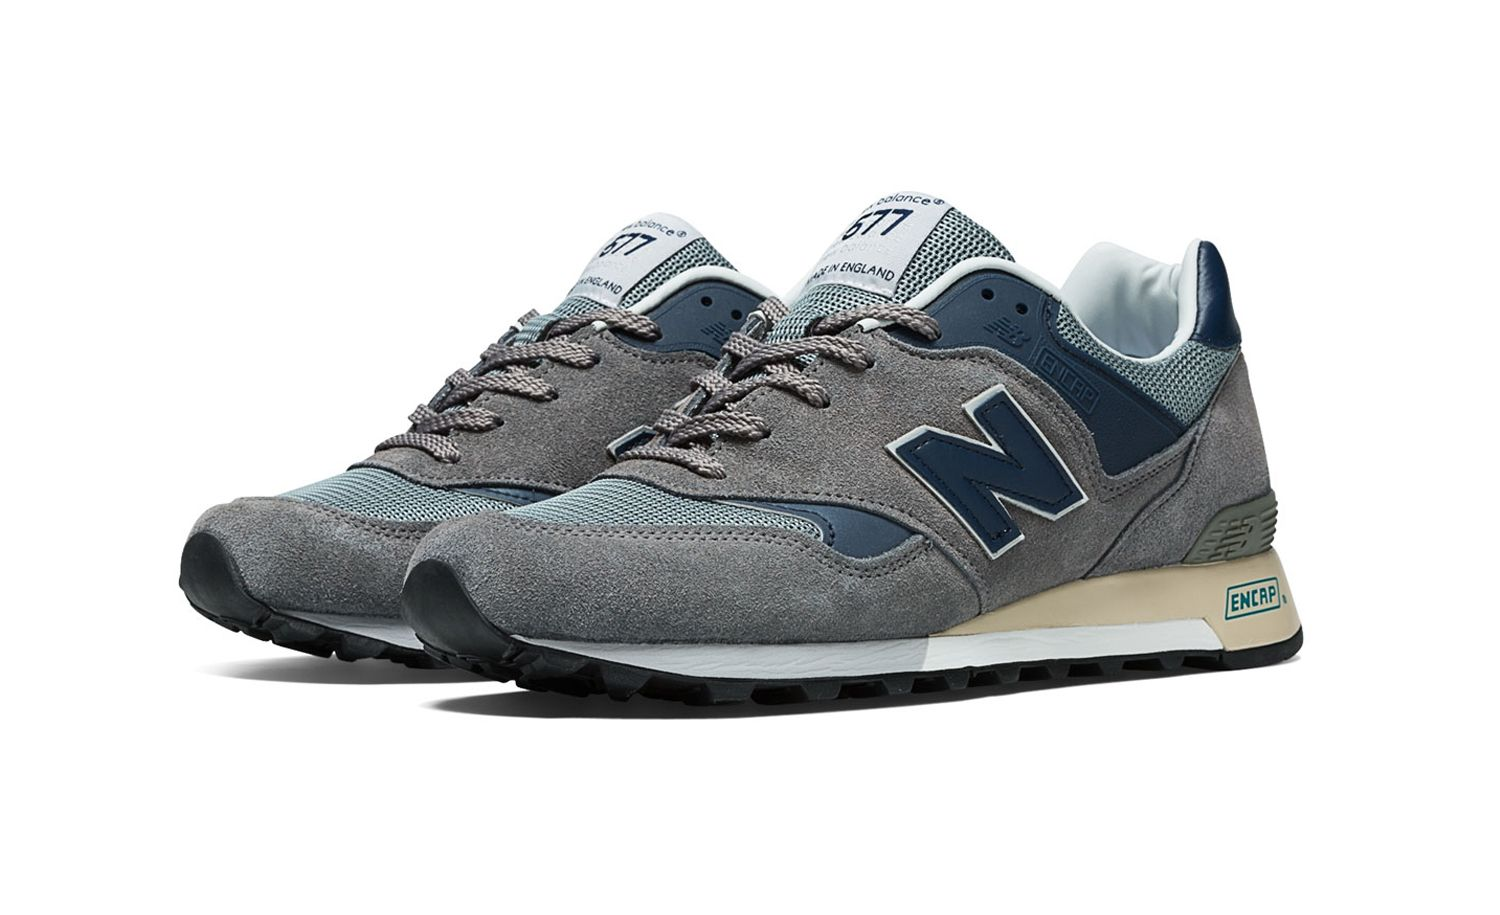 New Balance 577 Anniversary Made in UK